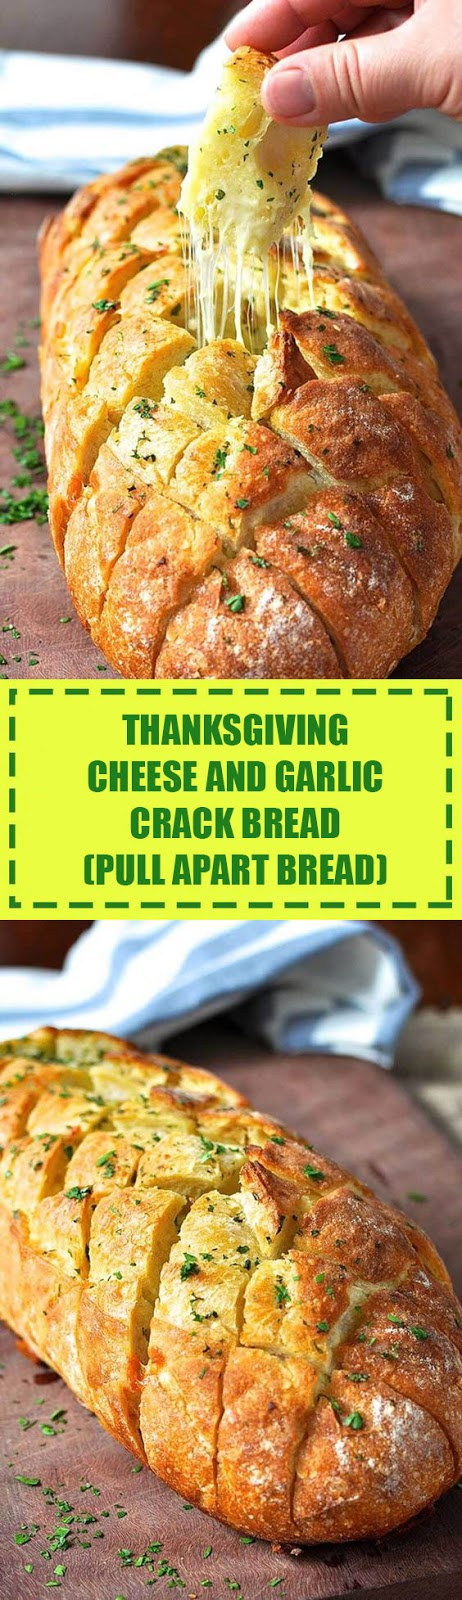 Thanksgiving Cheese and Garlic Crack Bread (Pull Apart Bread)